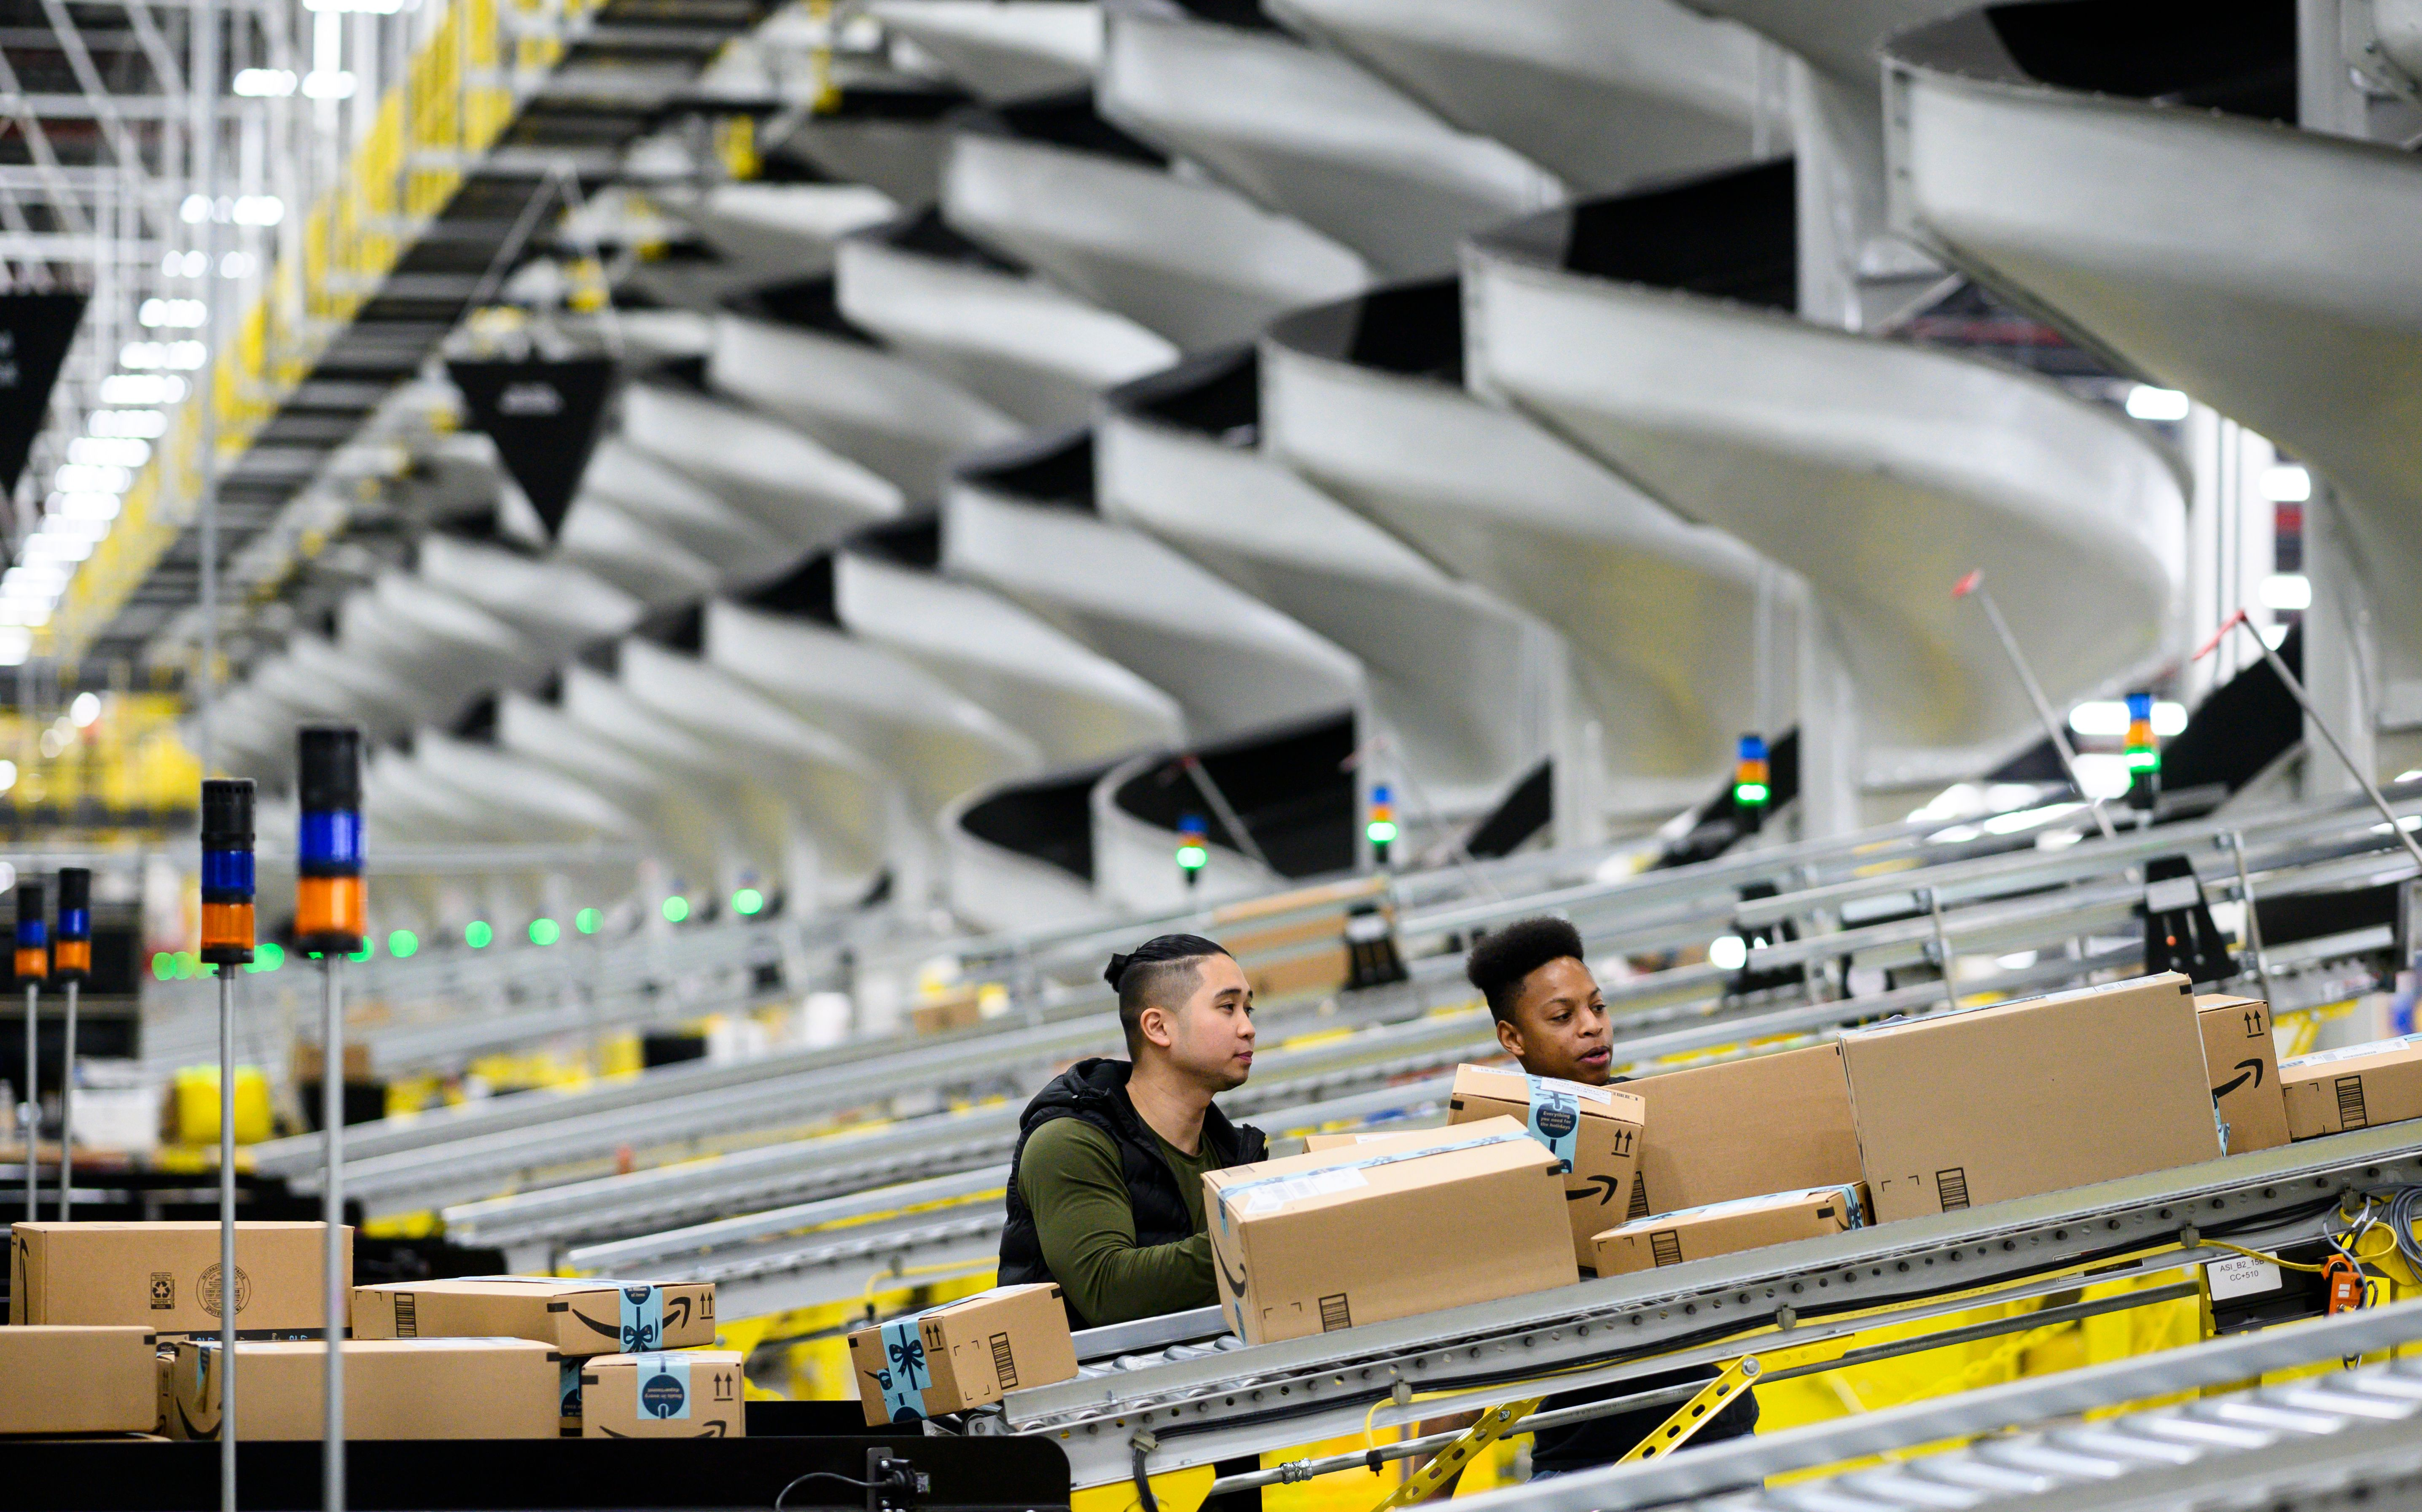 Two men working at an Amazon fulfillment center check the boxes moving down a conveyor belt.